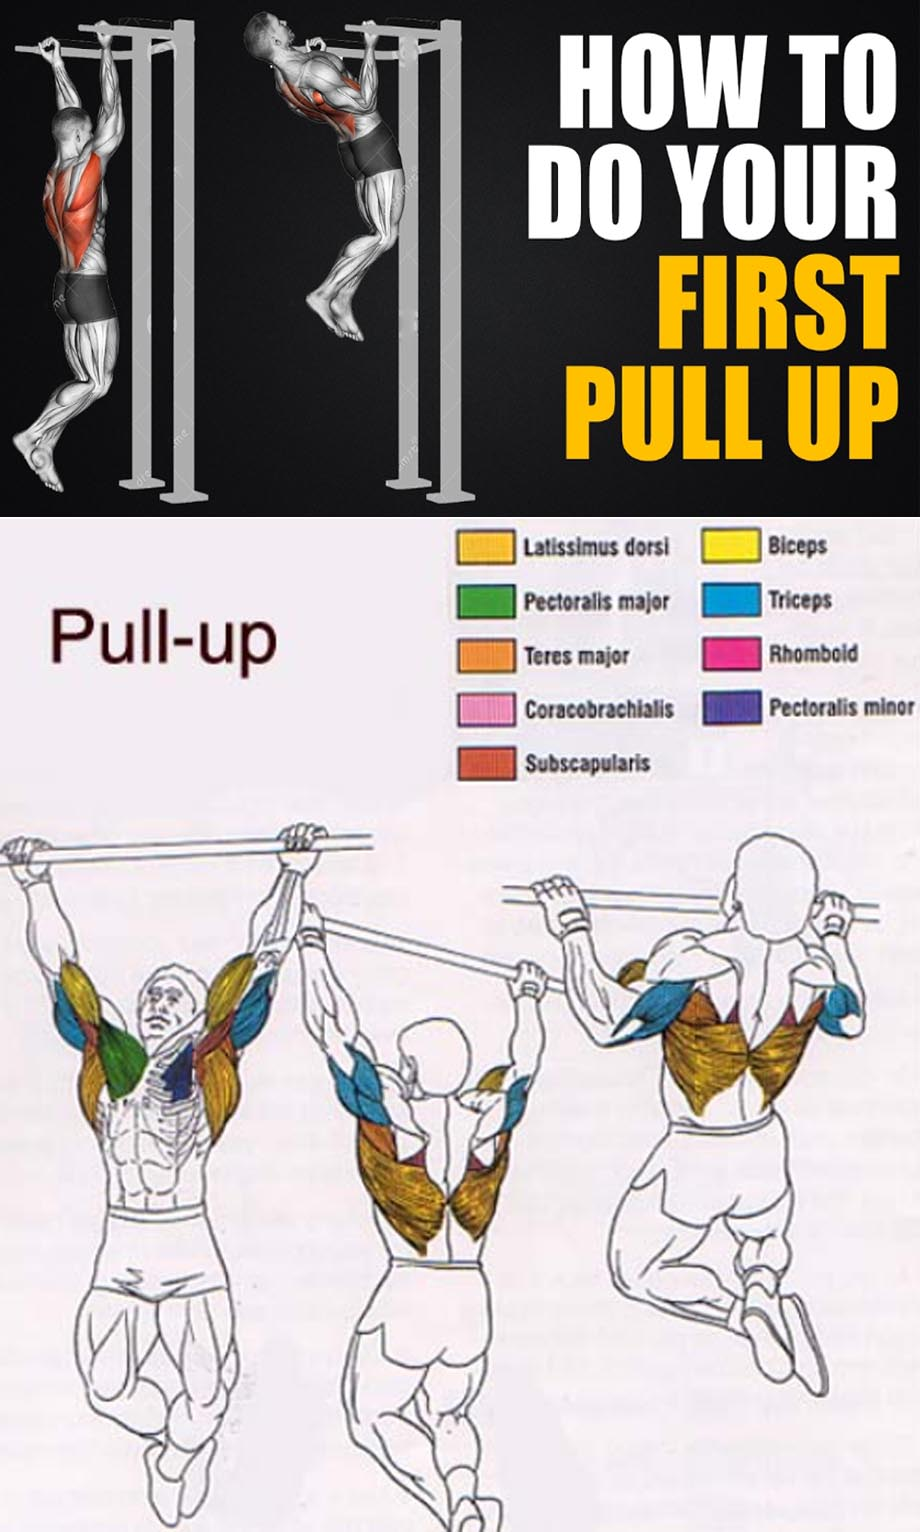 How to Pull-Up